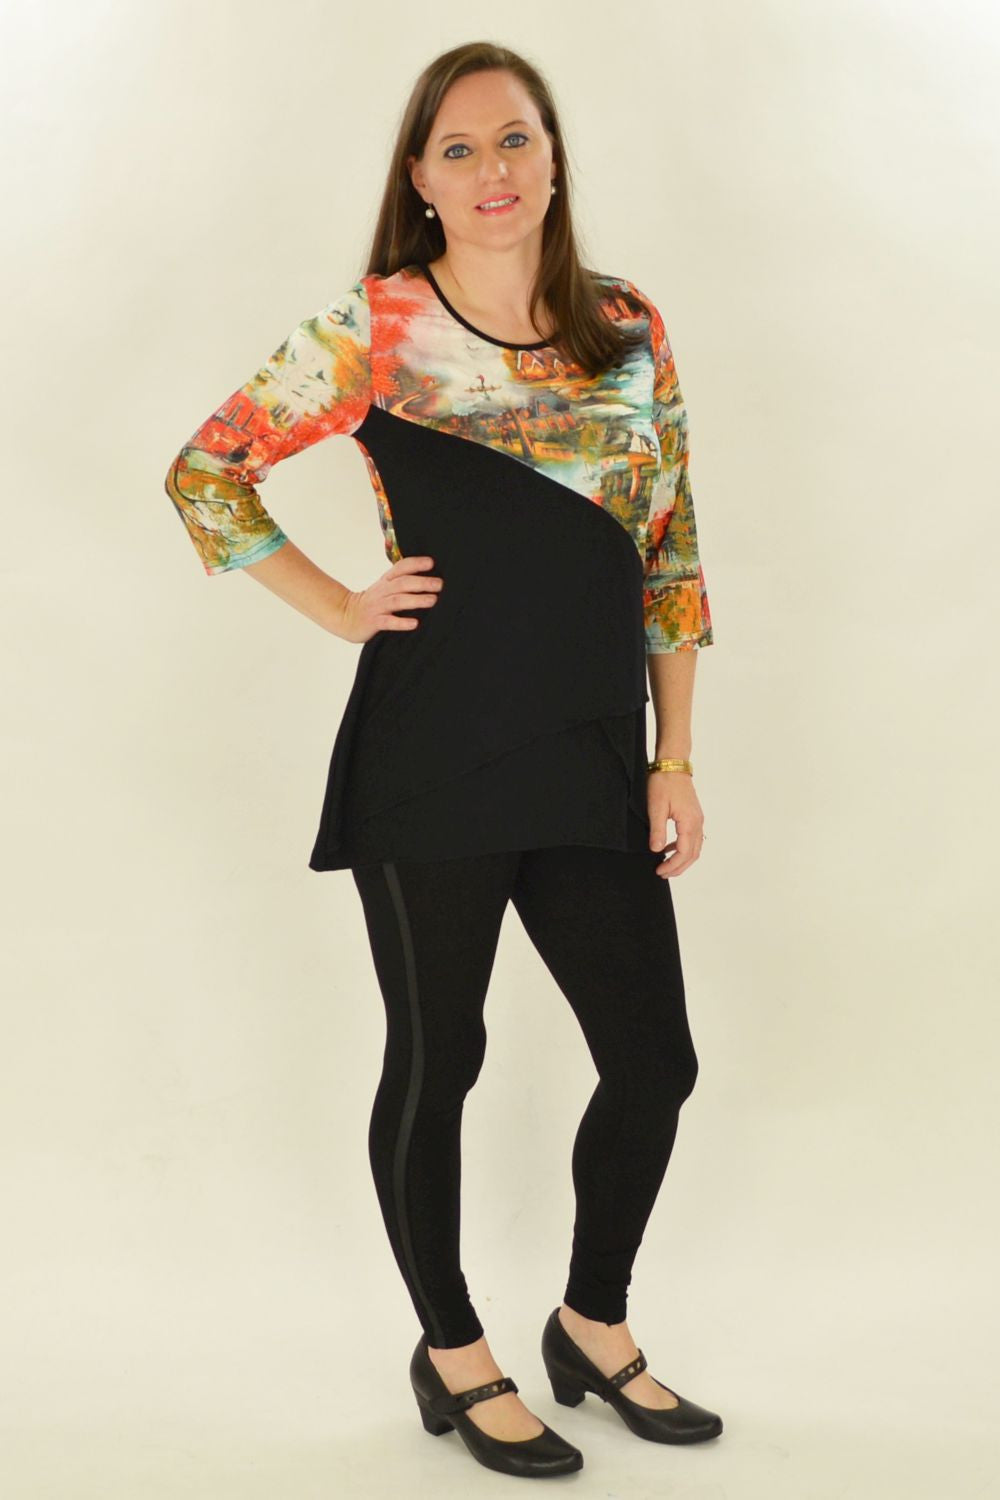 Autumn River Tunic | I Love Tunics | Tunic Tops | Tunic | Tunic Dresses  | womens clothing online